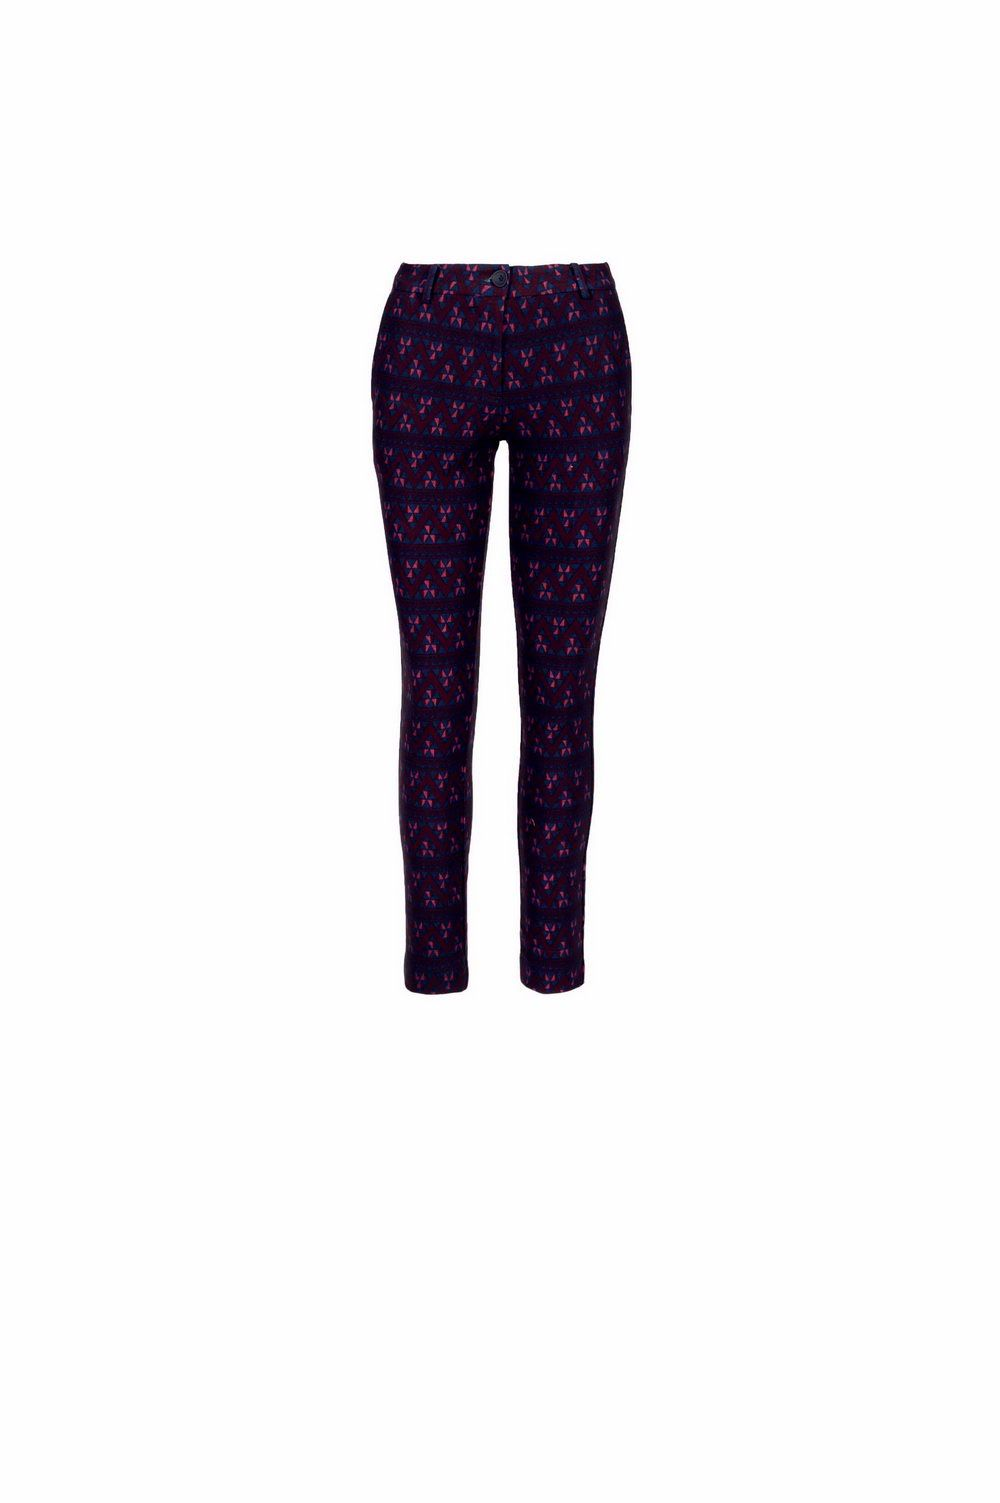 AnonymeDesigners_R239FP089 - Trouses - PVP 120,60€_resize